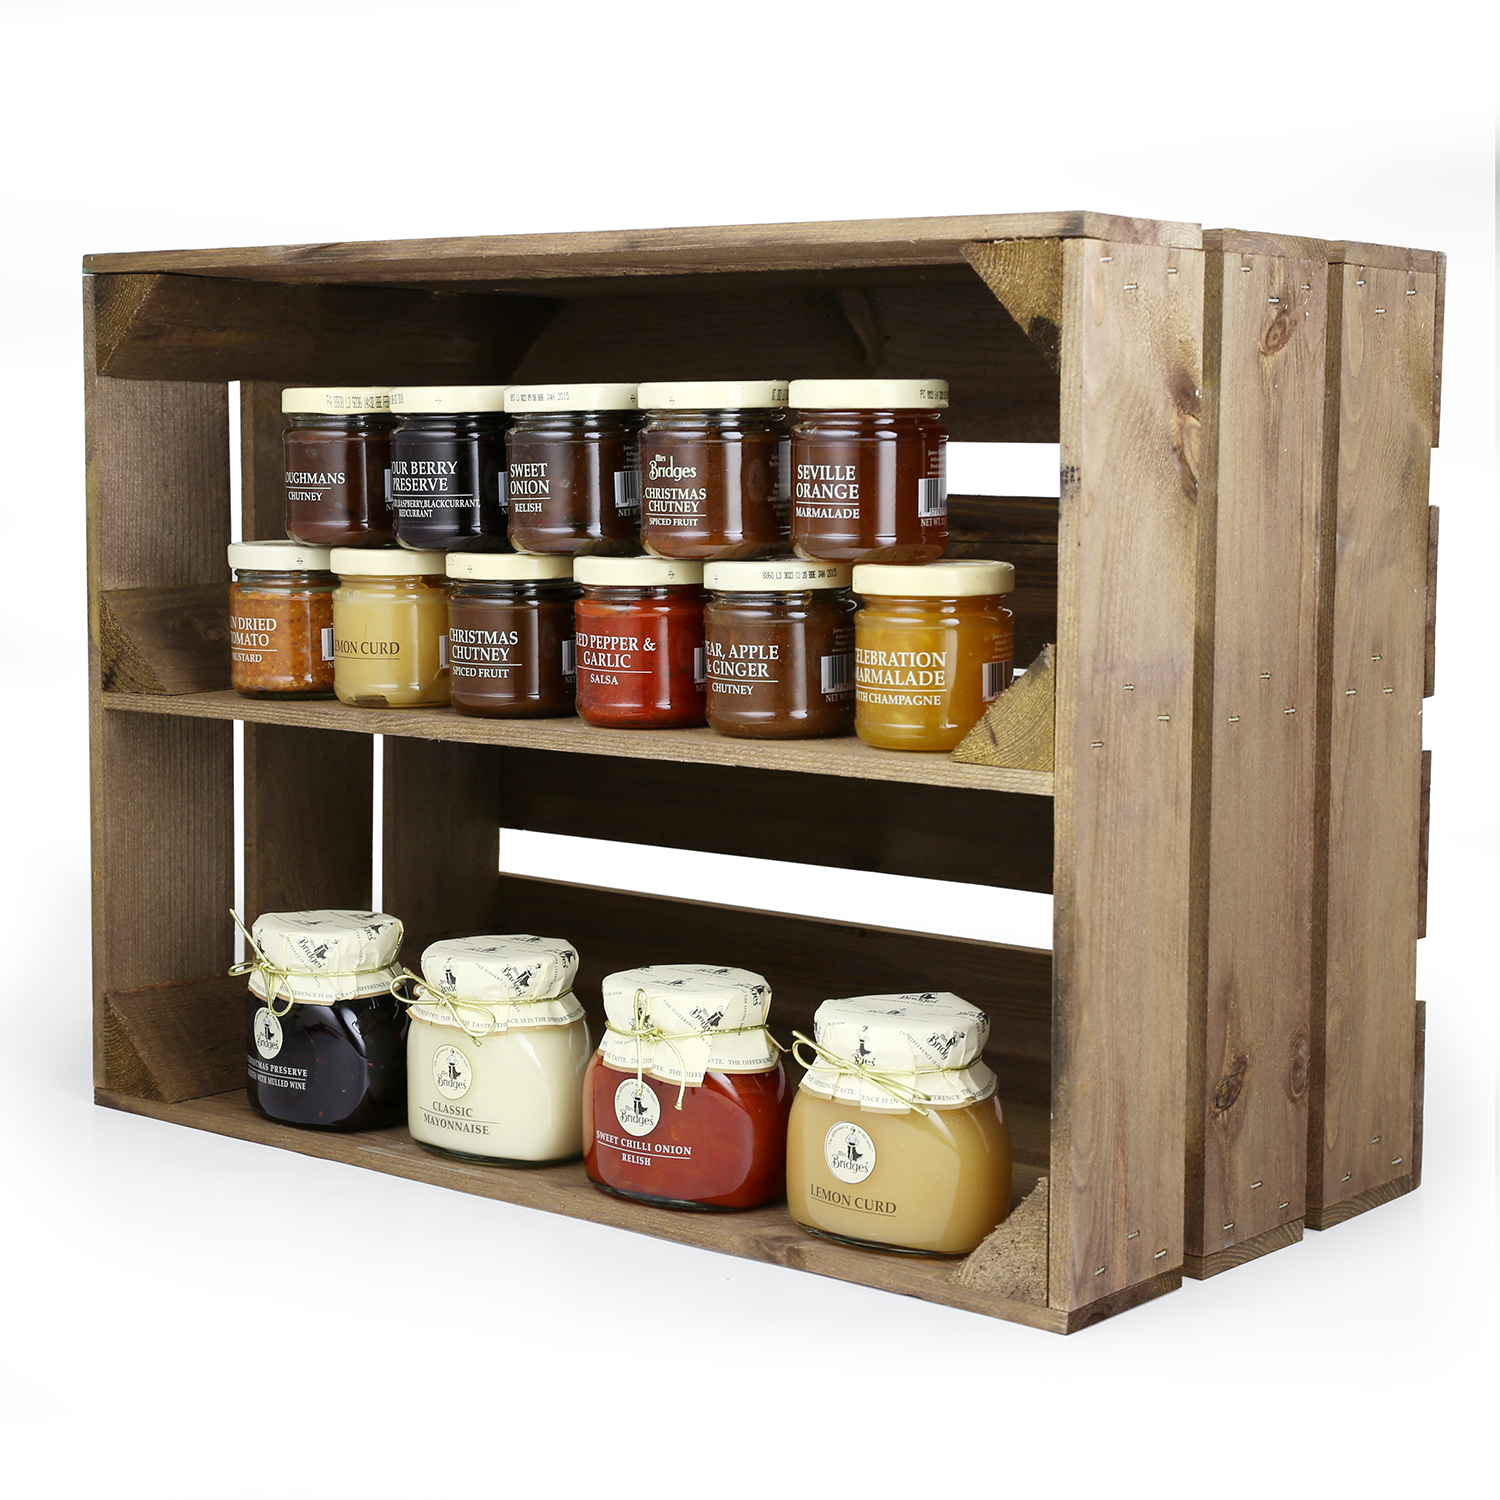 Our Standard Large Rustic Crate Now Comes With A Shelf